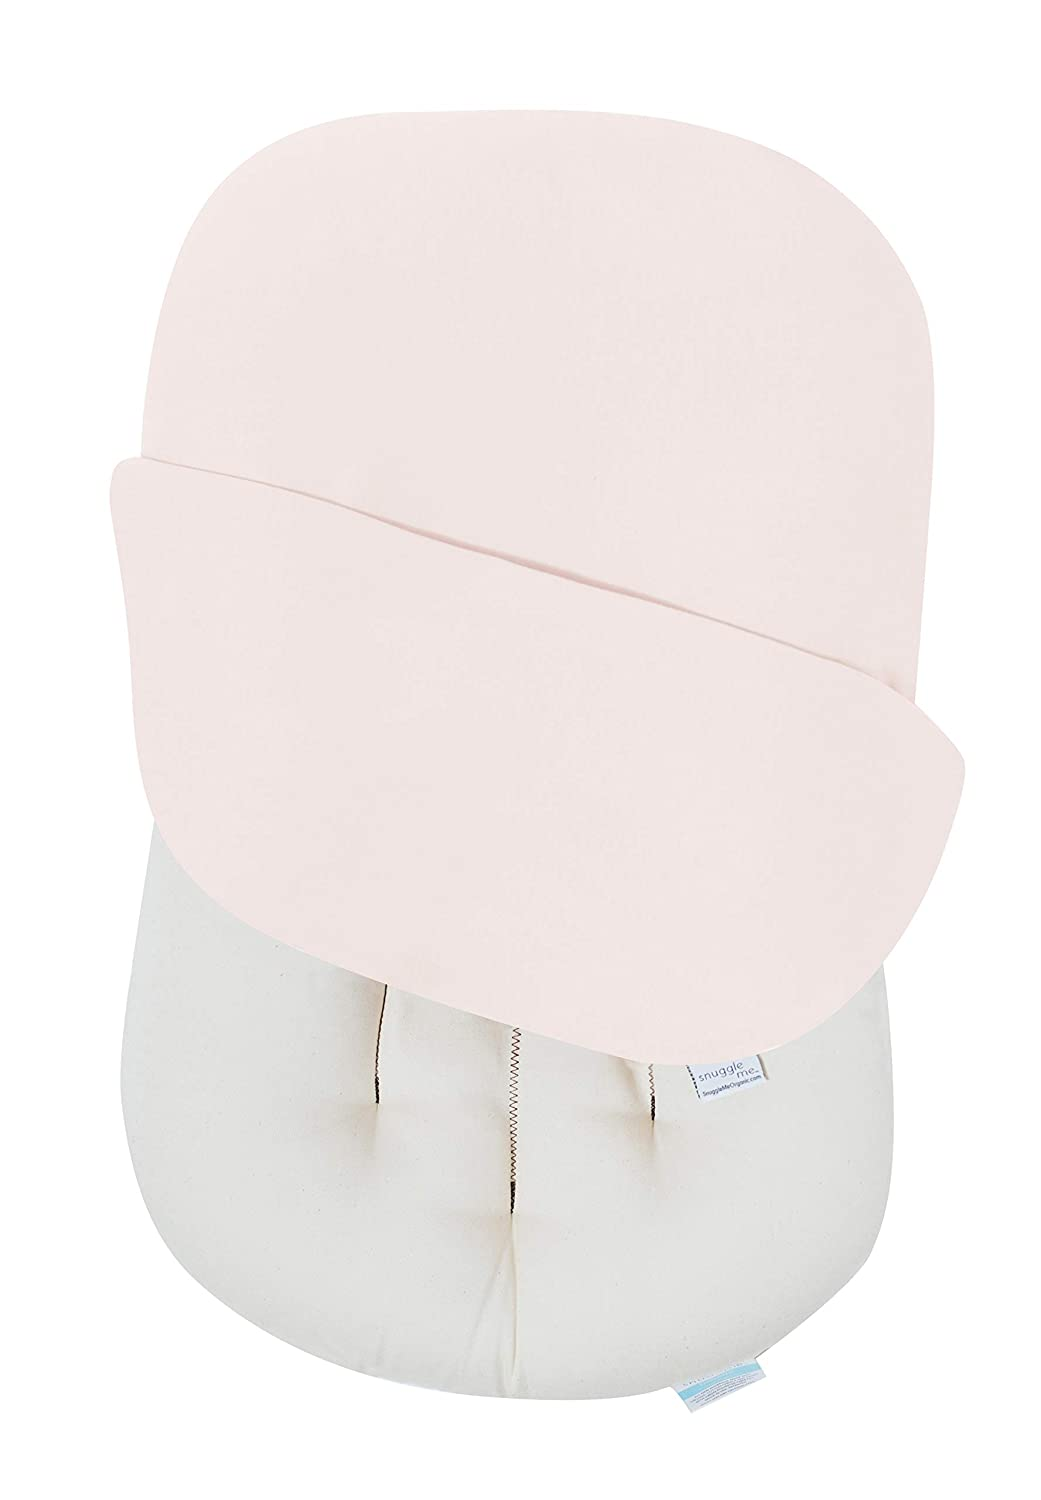 Baby Lounger /& Infant Floor Seat Fiberfill |/ Sugar Plum Organic Cotton Newborn Essentials Snuggle Me Organic Bare